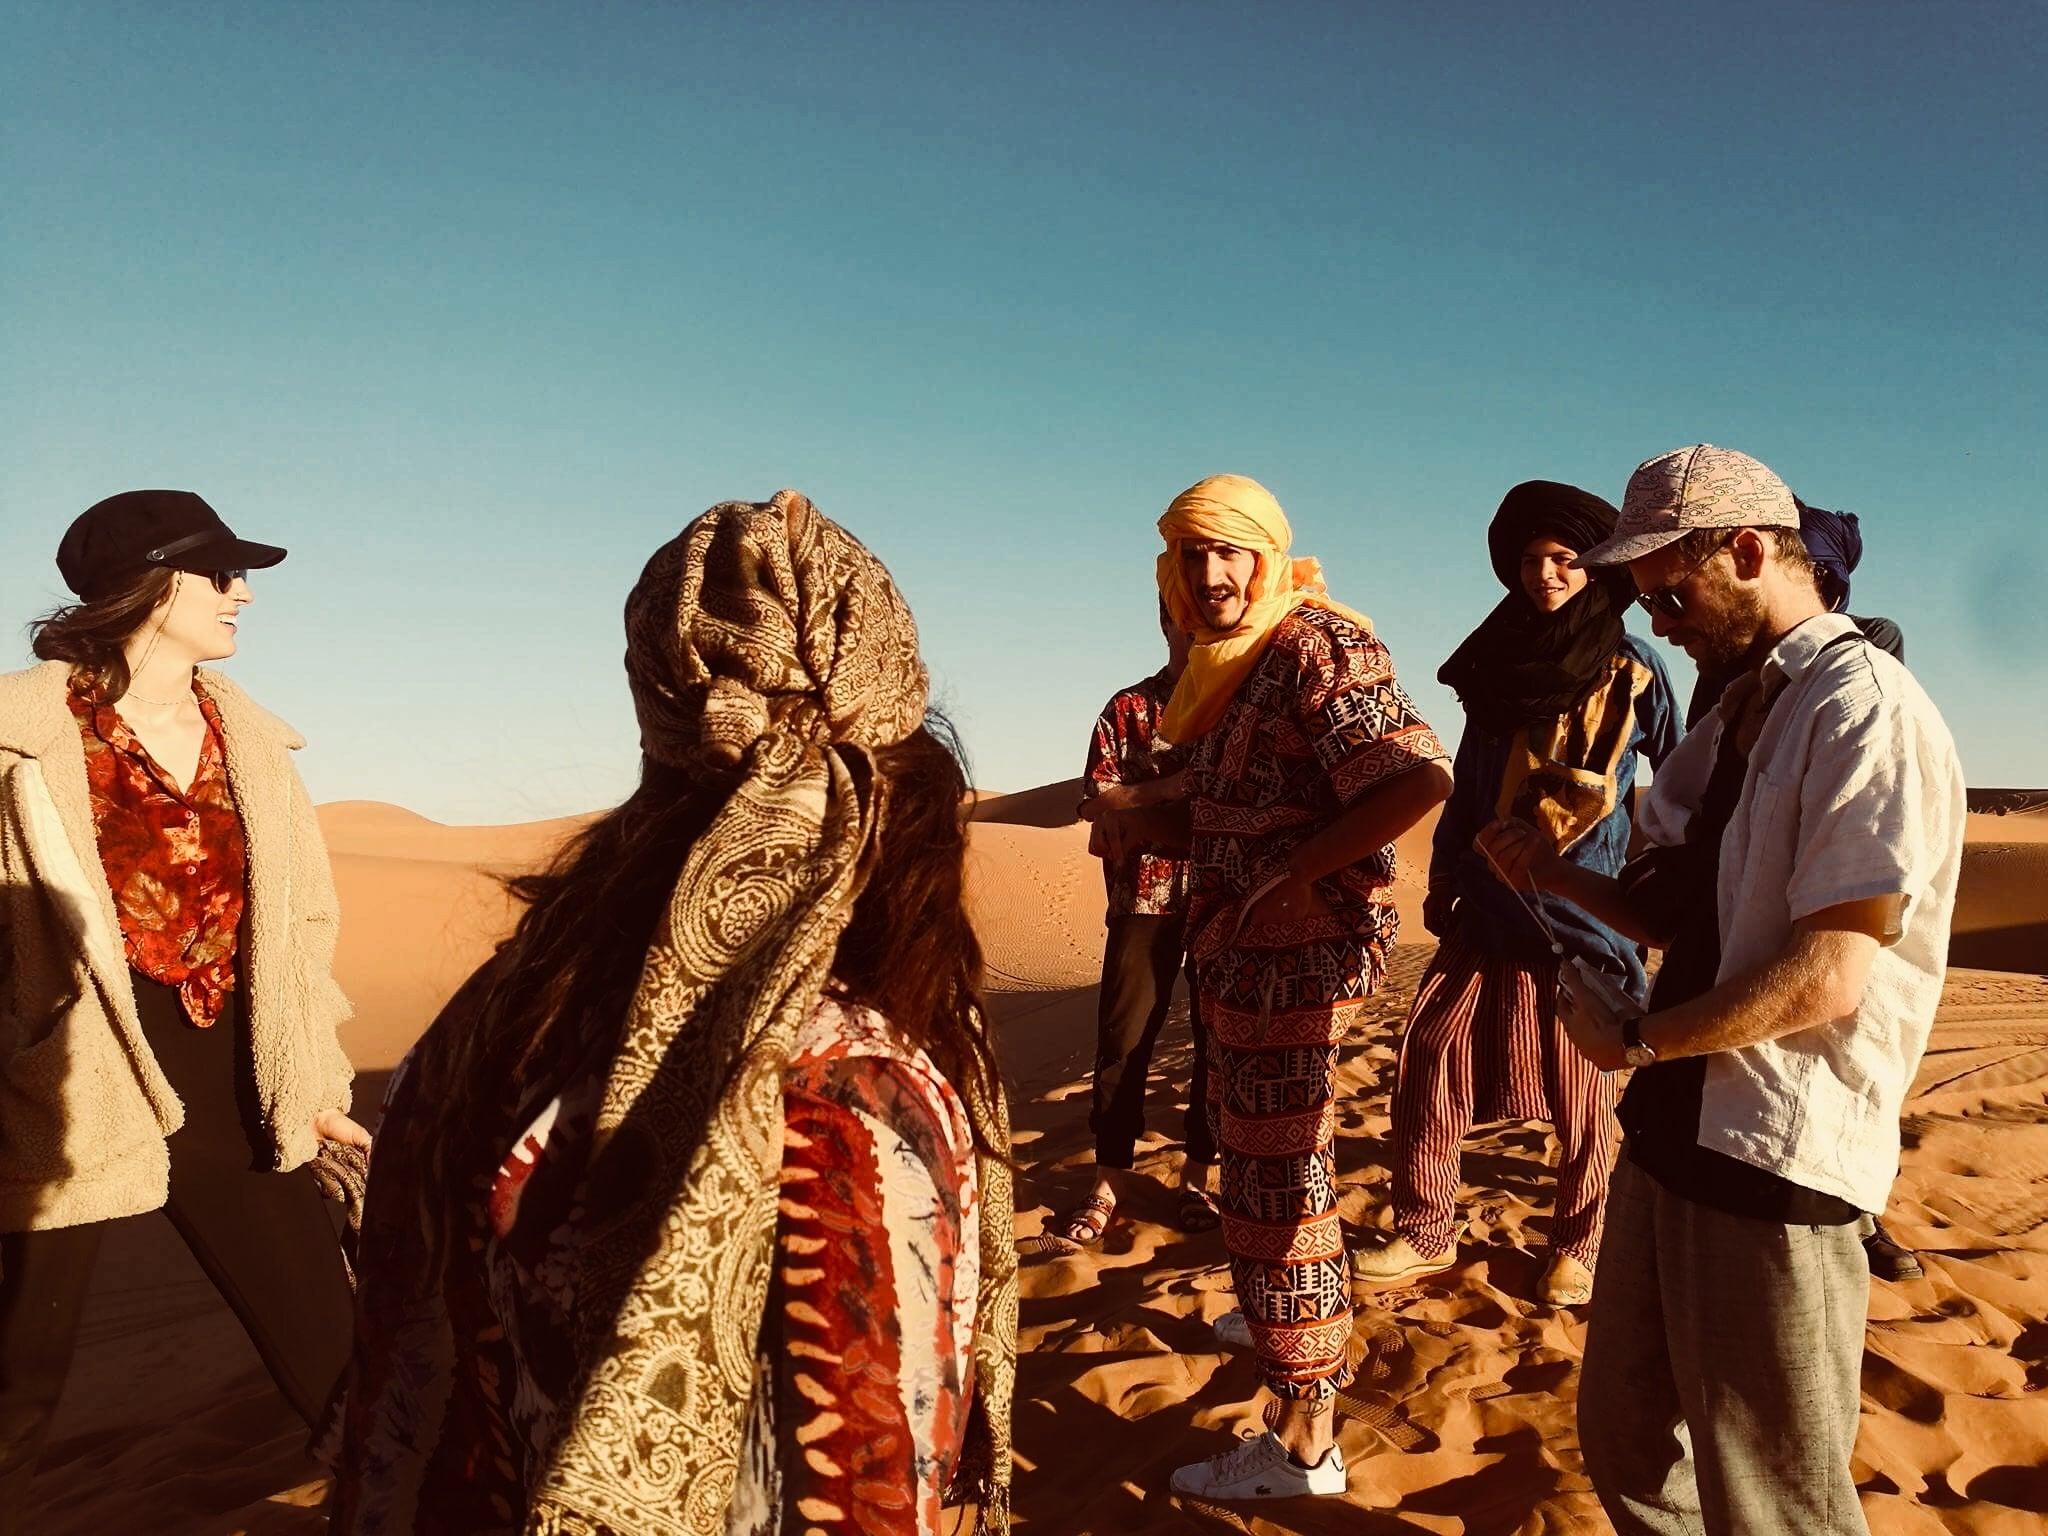 Friends exploring the Western Sahara in Morocco, blue skies and dusty yellow sand